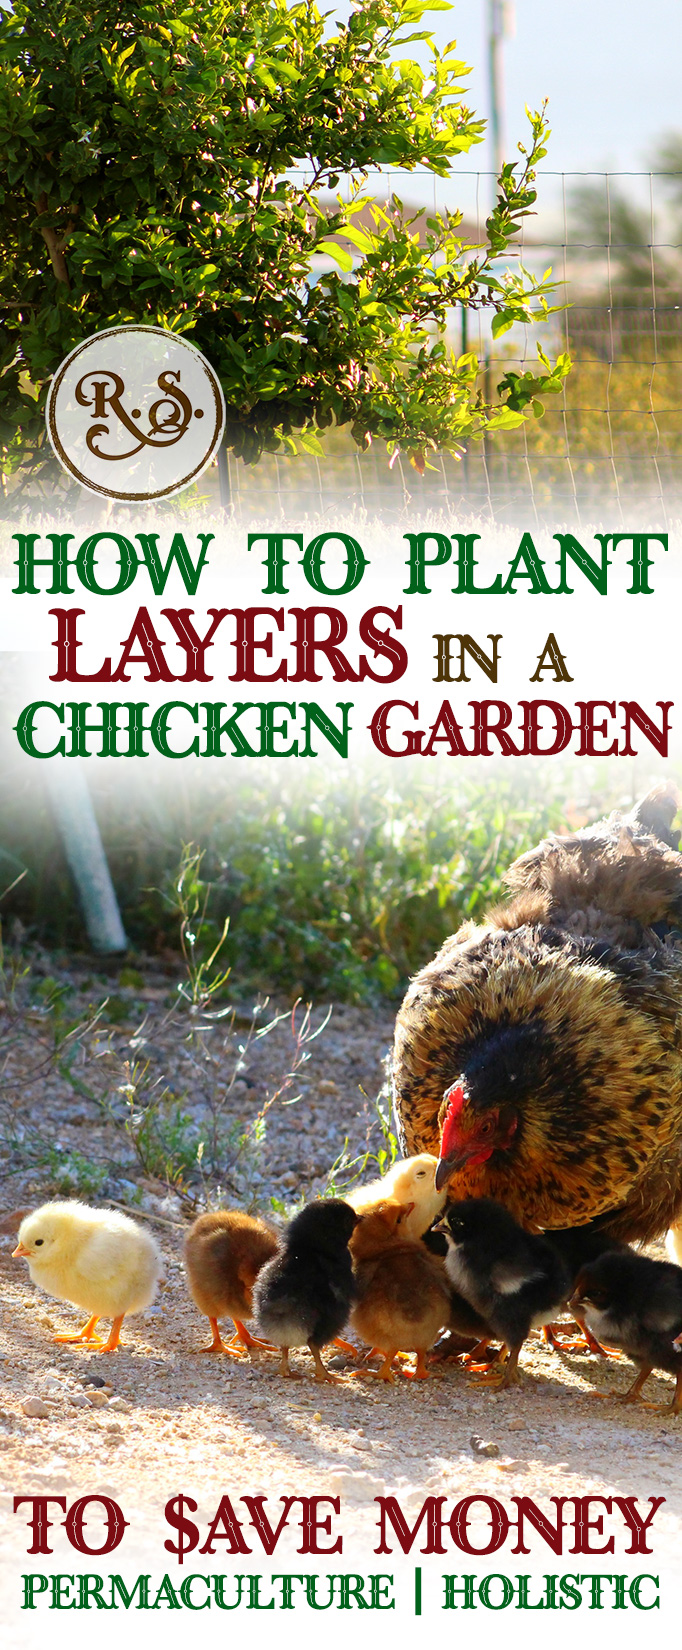 Grow a sustainable garden for your backyard chickens to save money on their feed bill. Plant herbs, shrubs and trees for a holistic, permaculture homestead. Great DIY ideas for beginners and beyond.